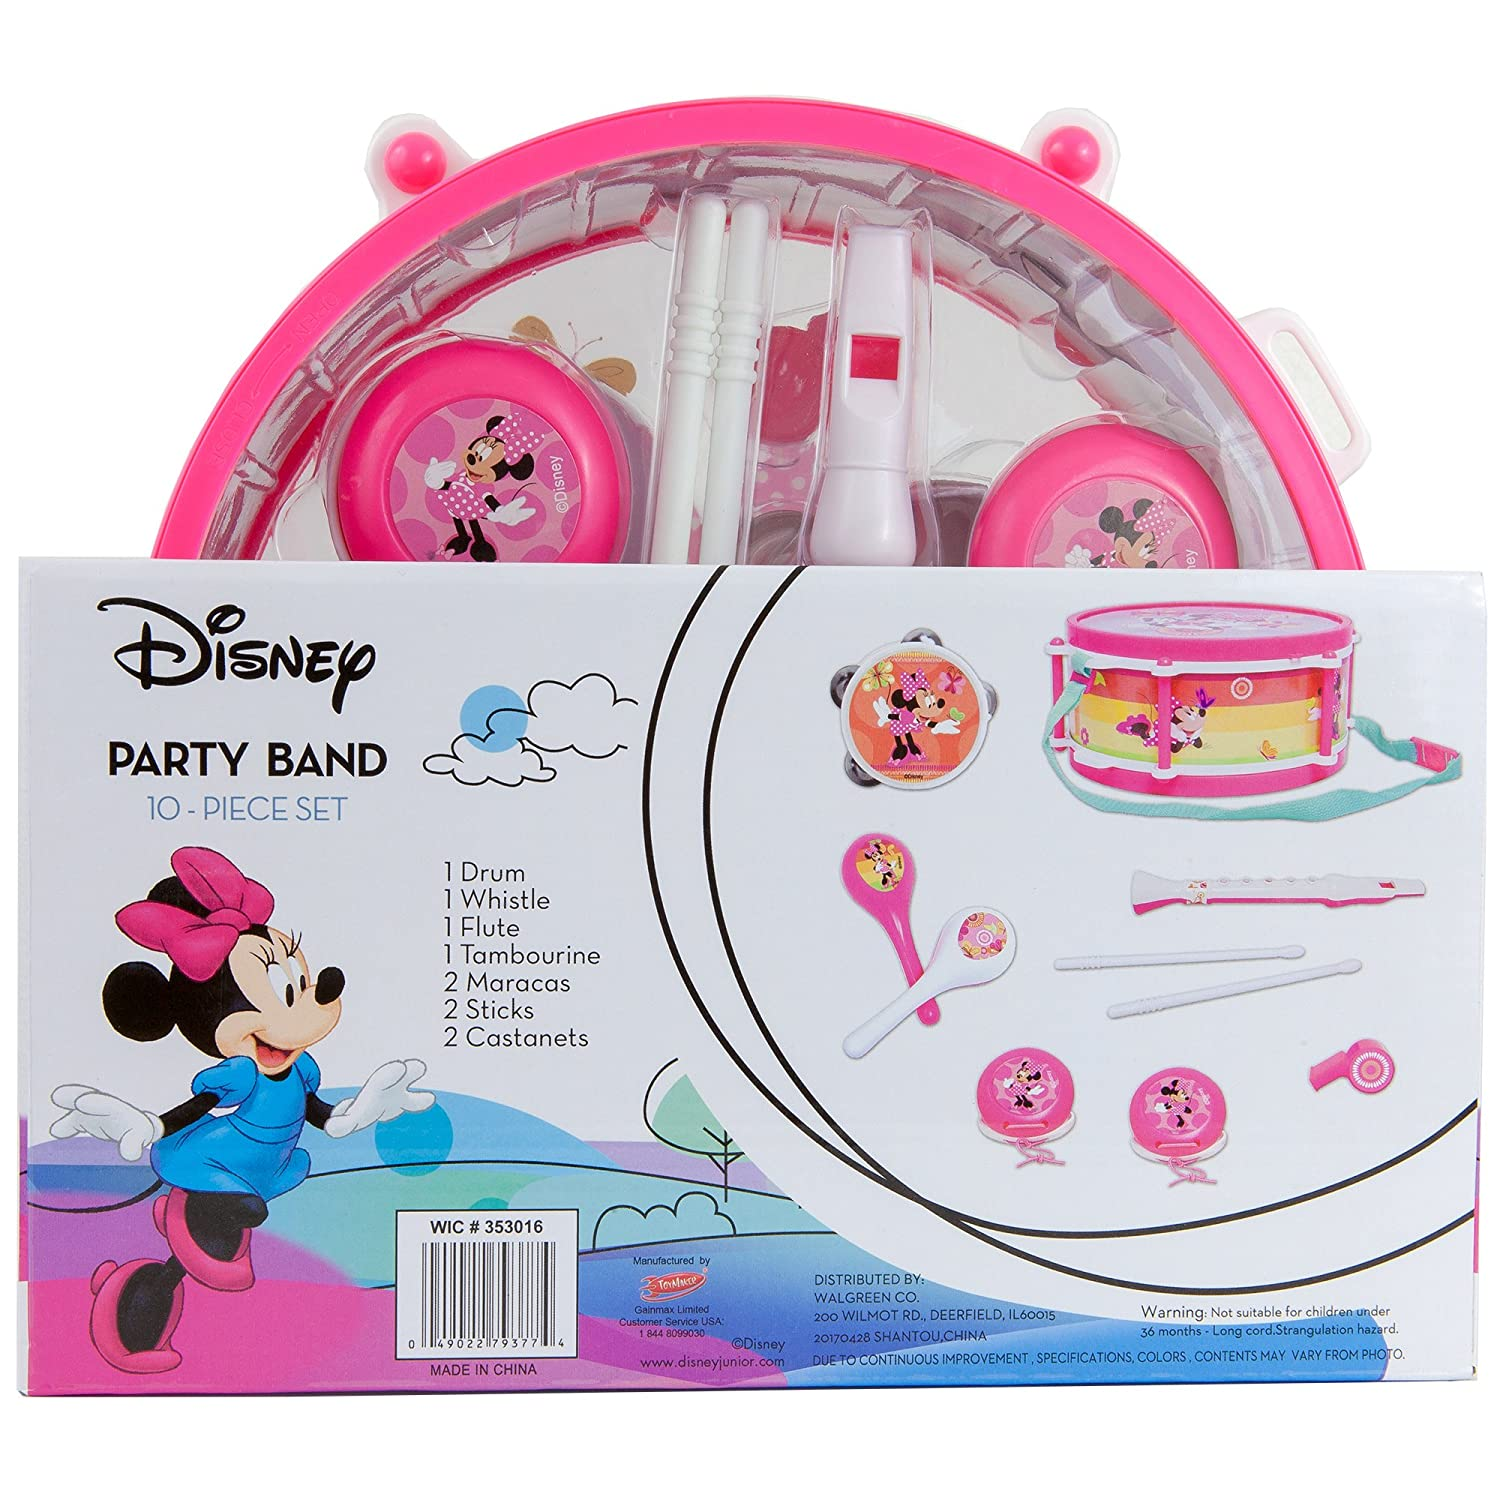 Amazon.com: Disney Minnie Mouse Clubhouse Party Band 10 piece Set ...